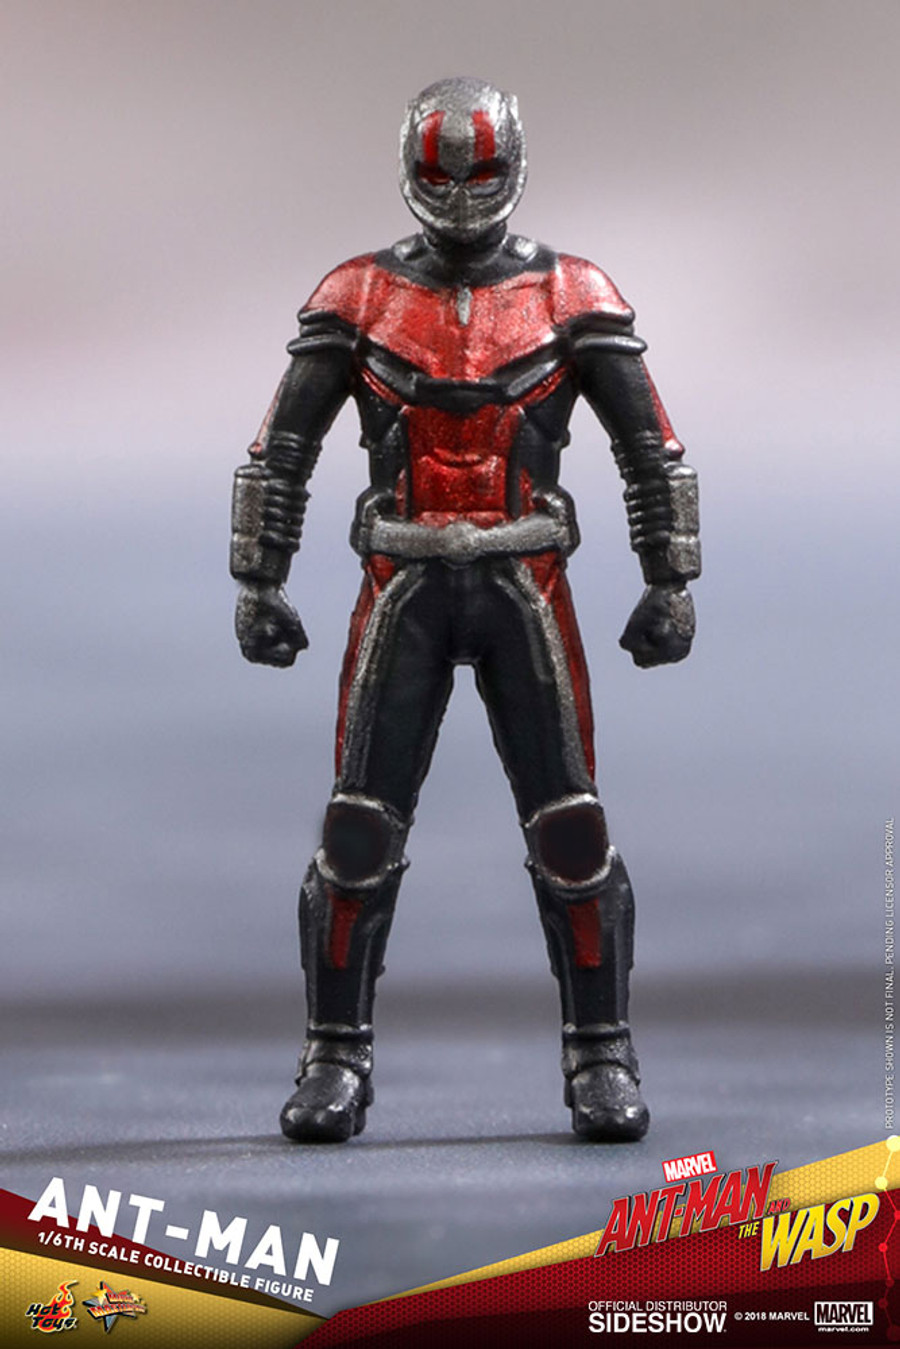 Hot Toys - Ant-Man and the Wasp: Ant-Man